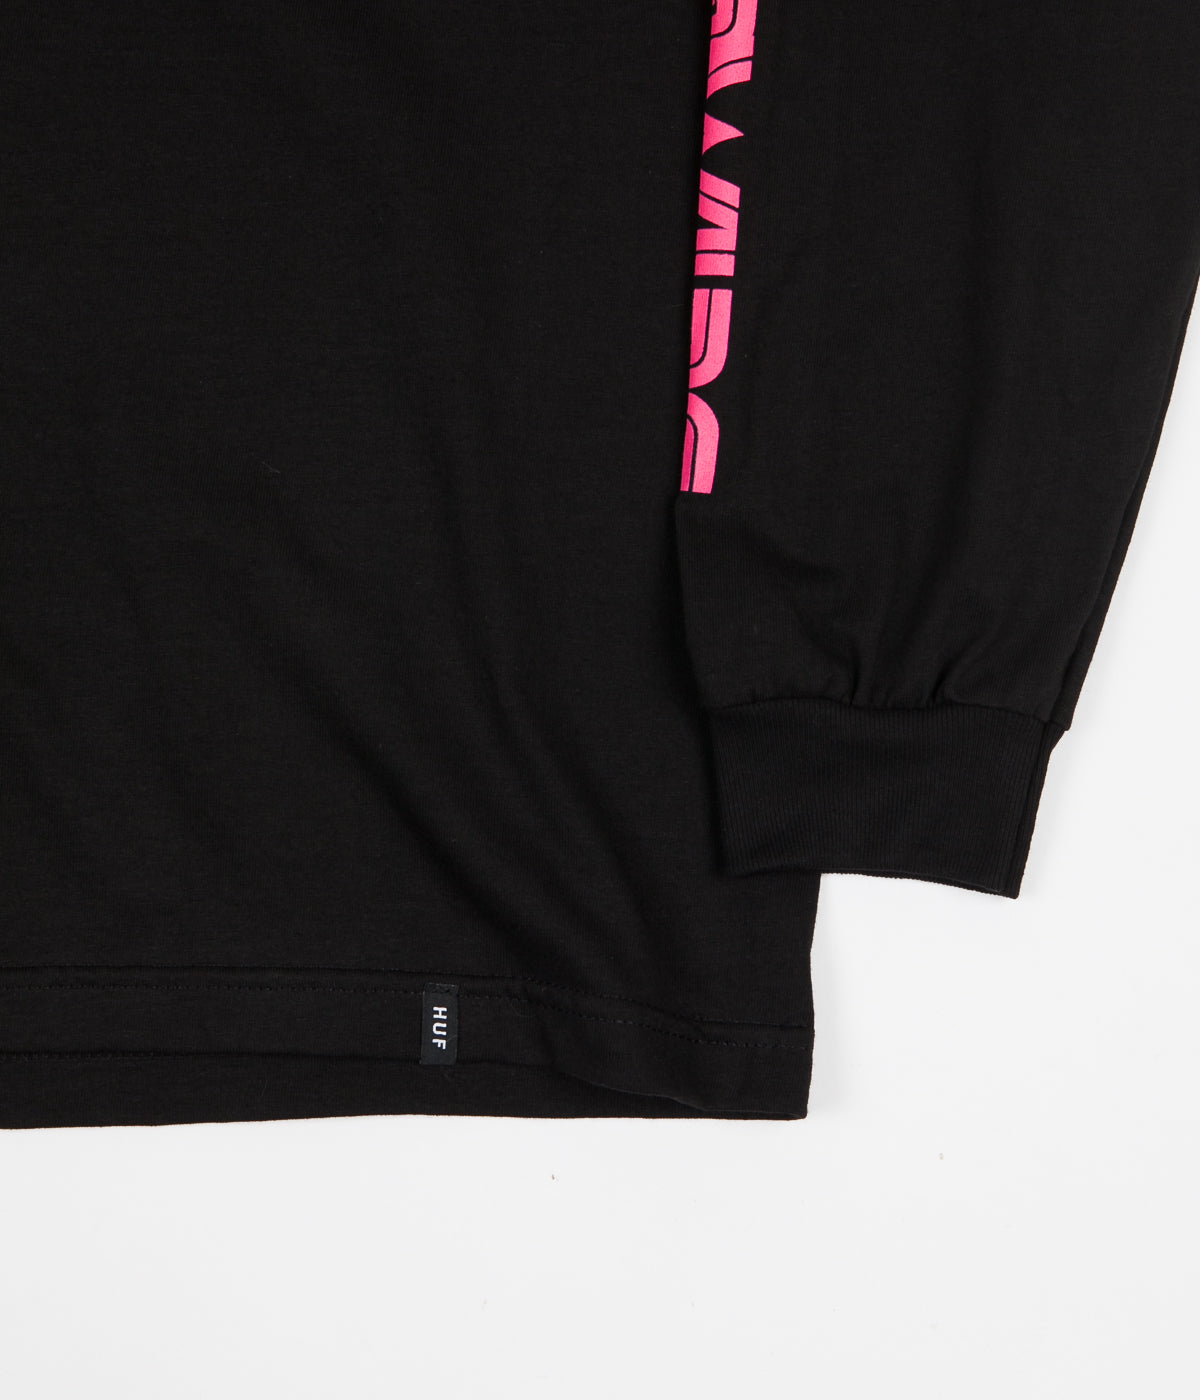 HUF Neo TT Long Sleeve T-Shirt - Black